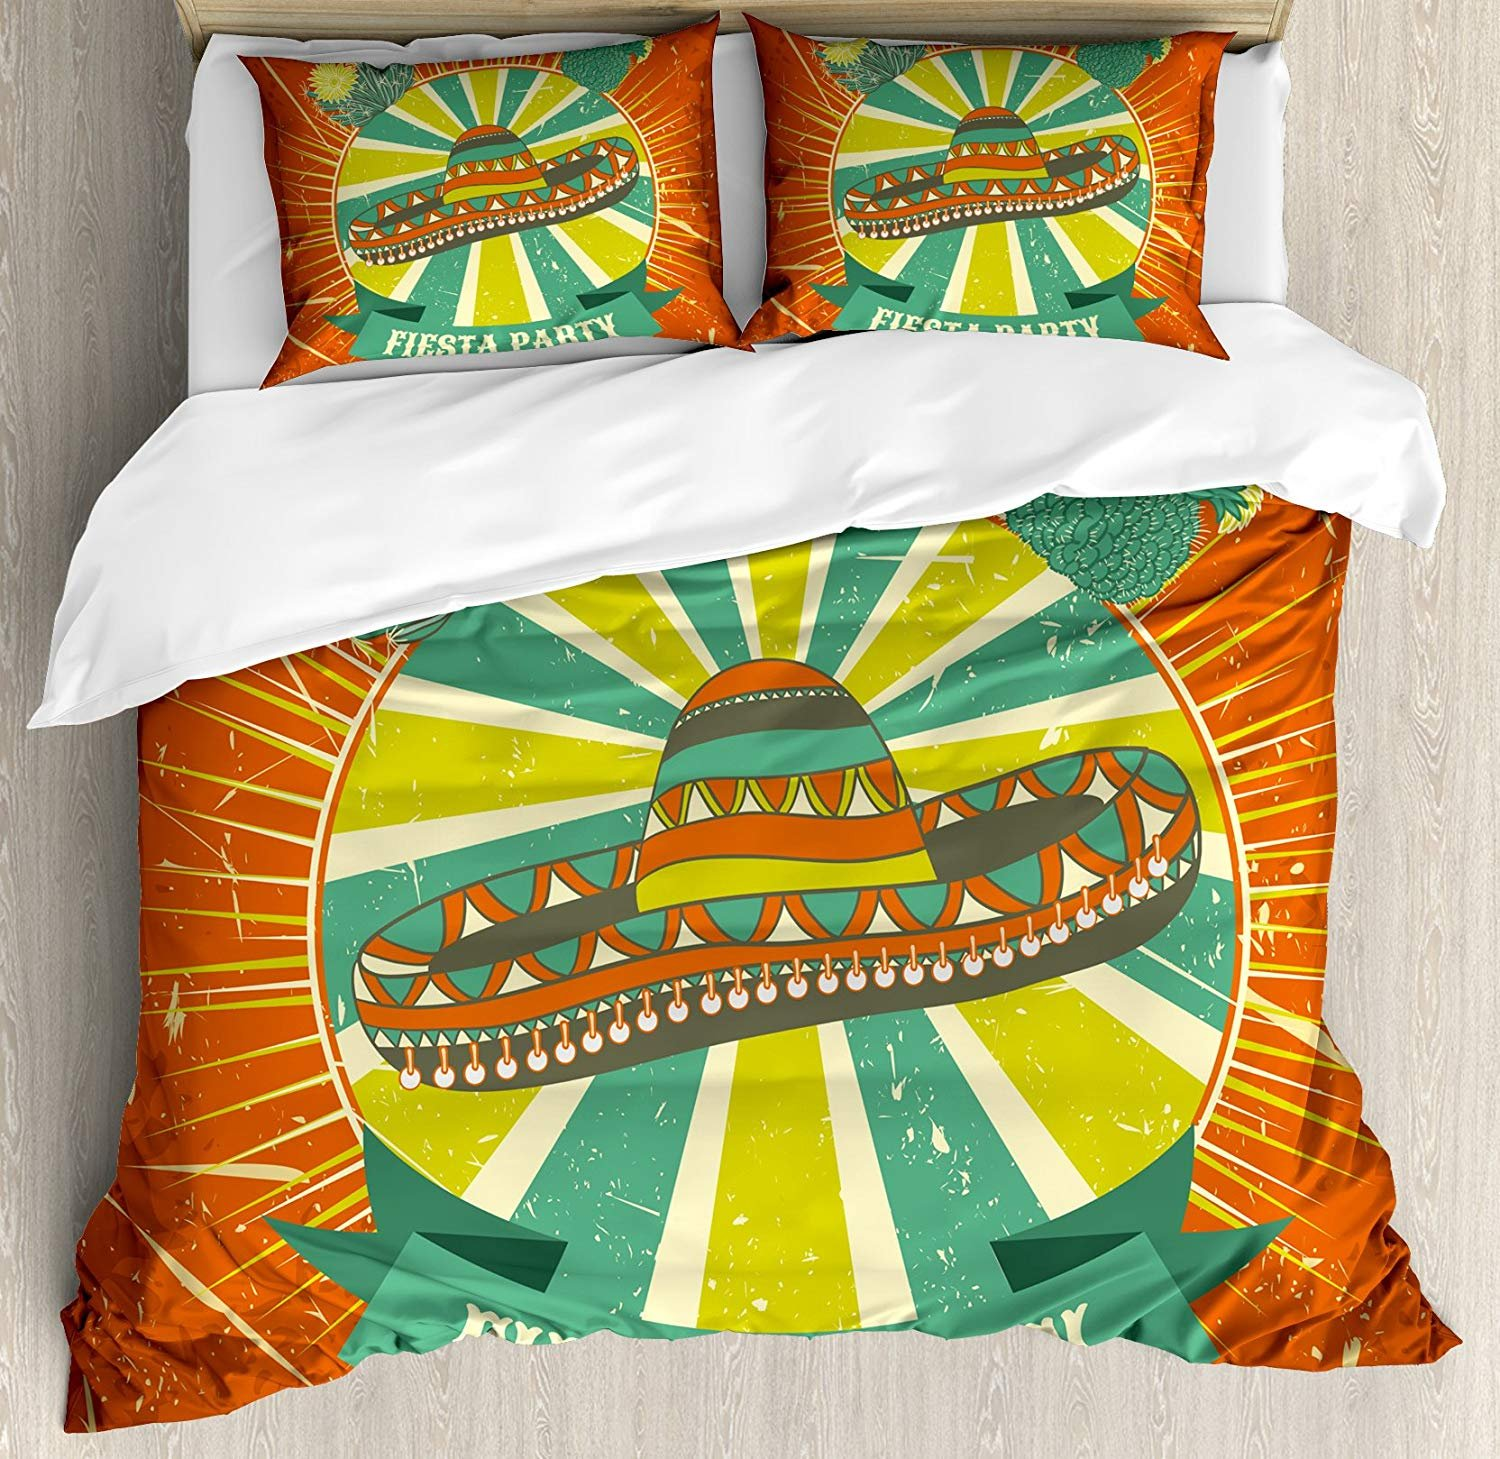 Fiesta Bedding Duvet Cover Sets for Children/Adult/Kids/Teens Twin Size, Latin America Culture Inspired Ethnic Sombrero and Cactuses Worn, Hotel Luxury Decorative 4pcs Set, Orange Seafoam Yellow Green